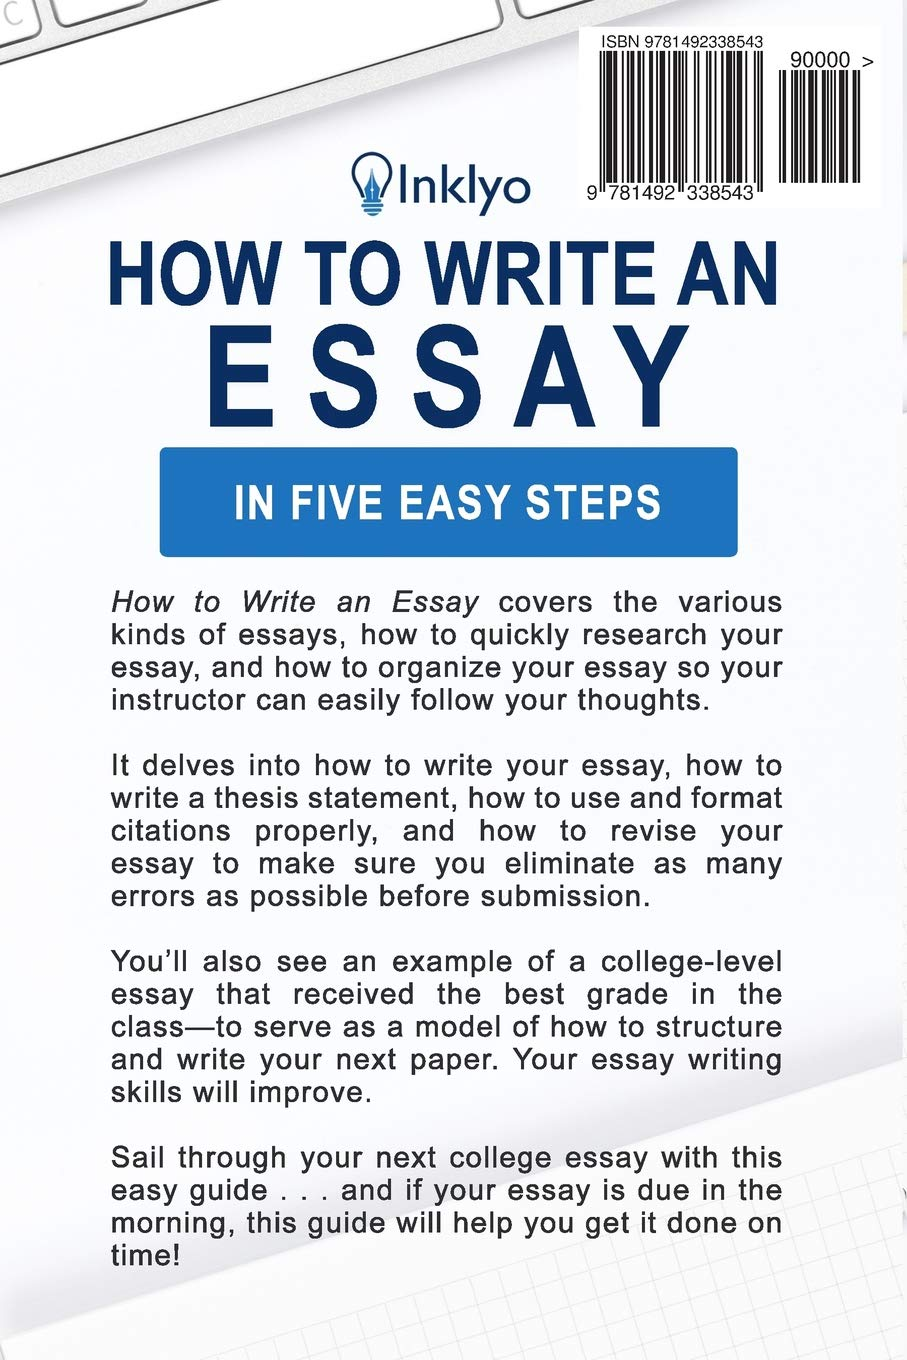 002 How To Write An Essay Example Shocking In Mla Format Word 2013 About Yourself For College Application Full